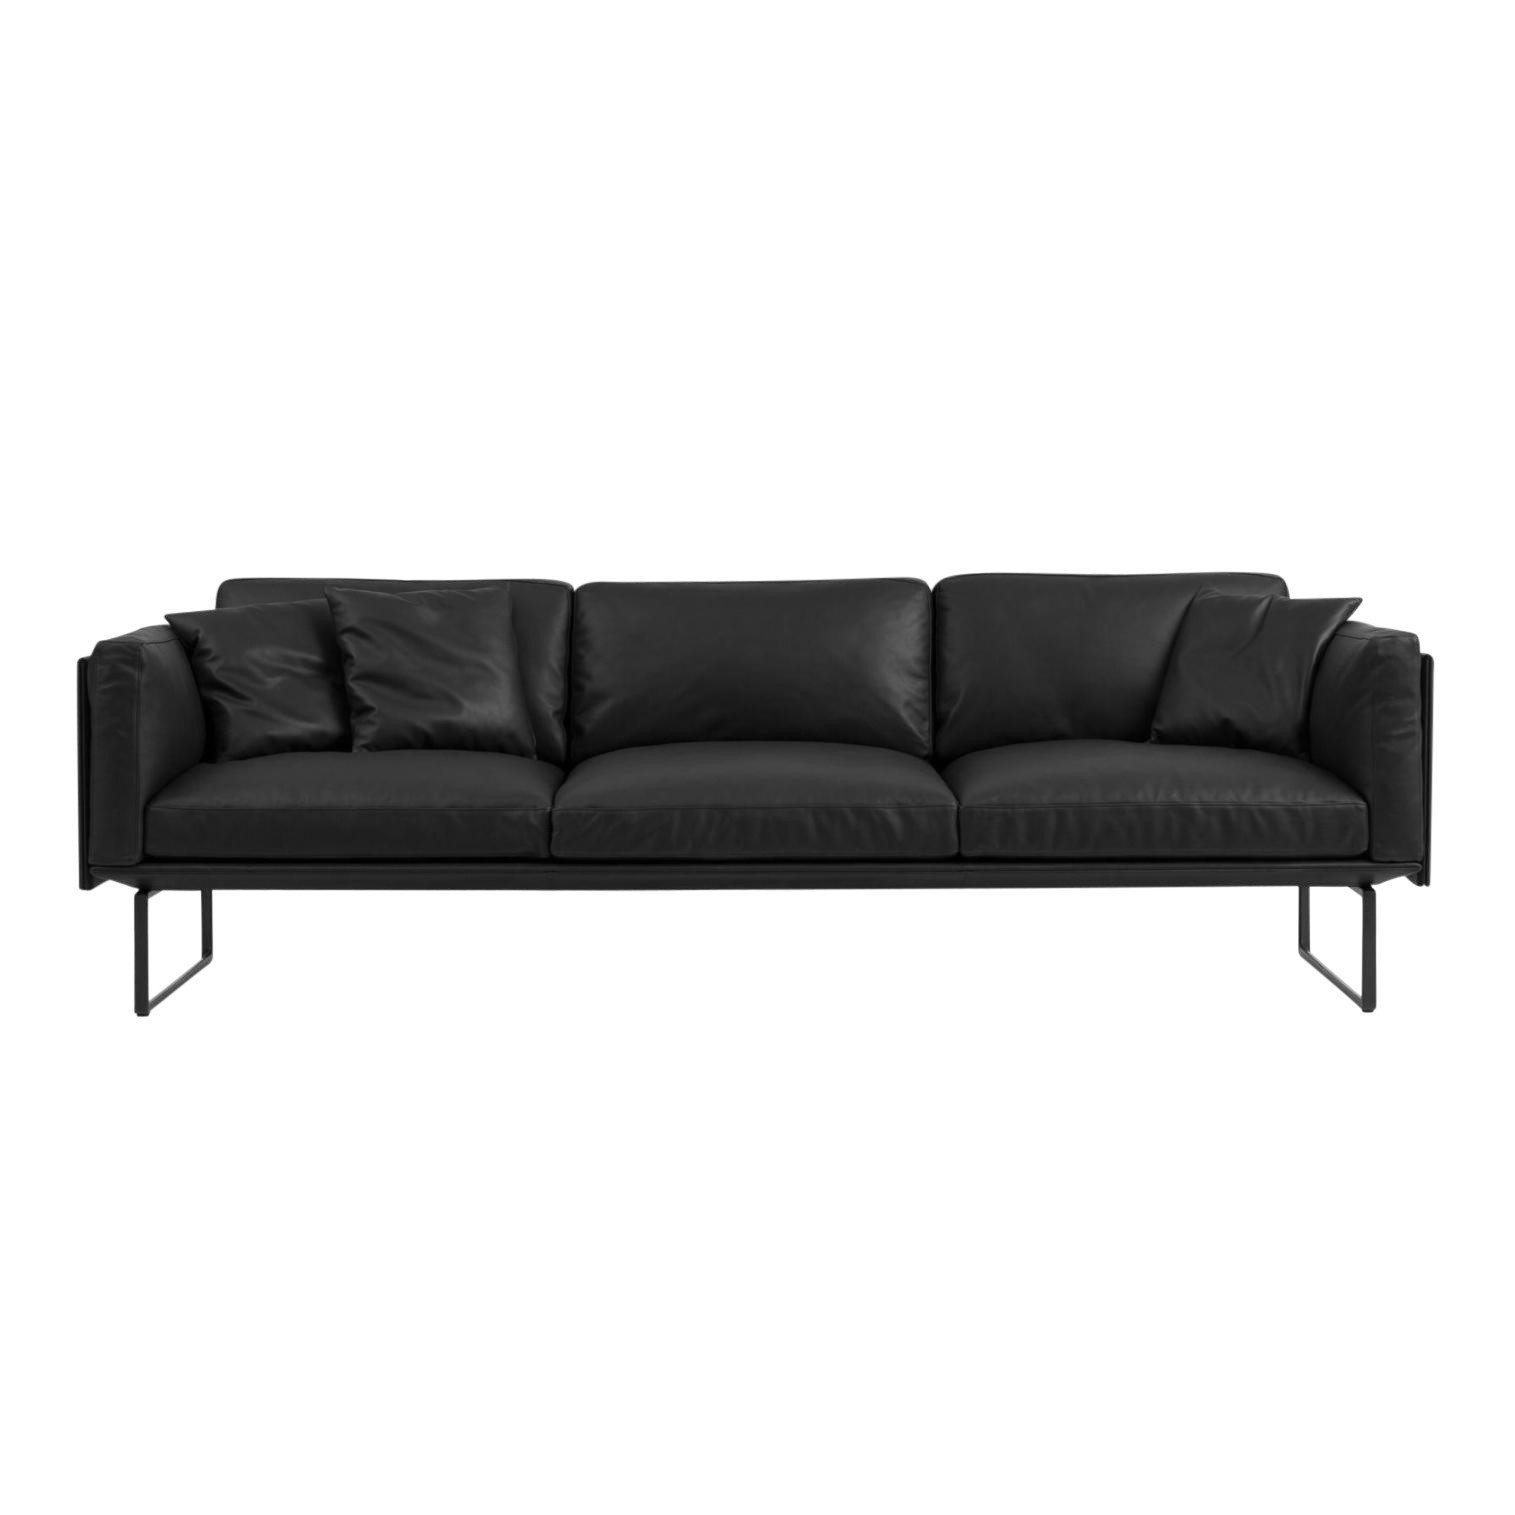 Cassina 8 Piero Lissoni 3 Seater Leather Sofa Ambientedirect